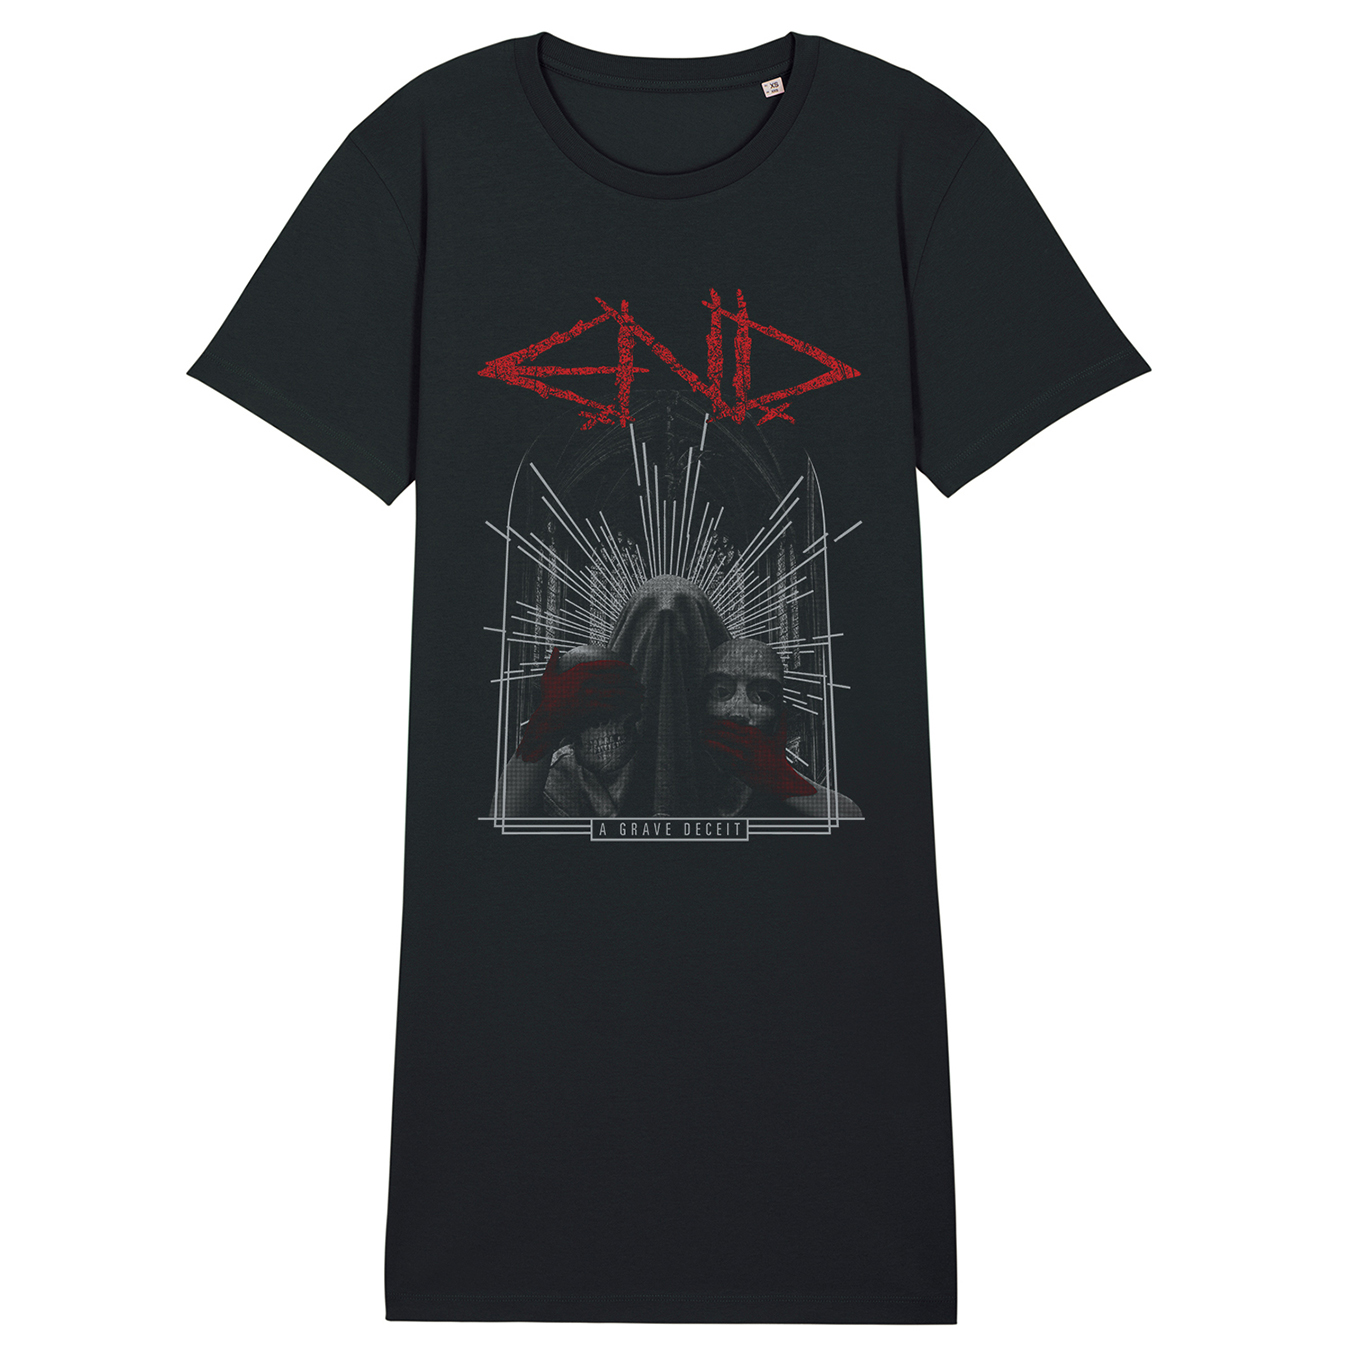 E.N.D. - A Grave Deceit - T-Shirt Dress